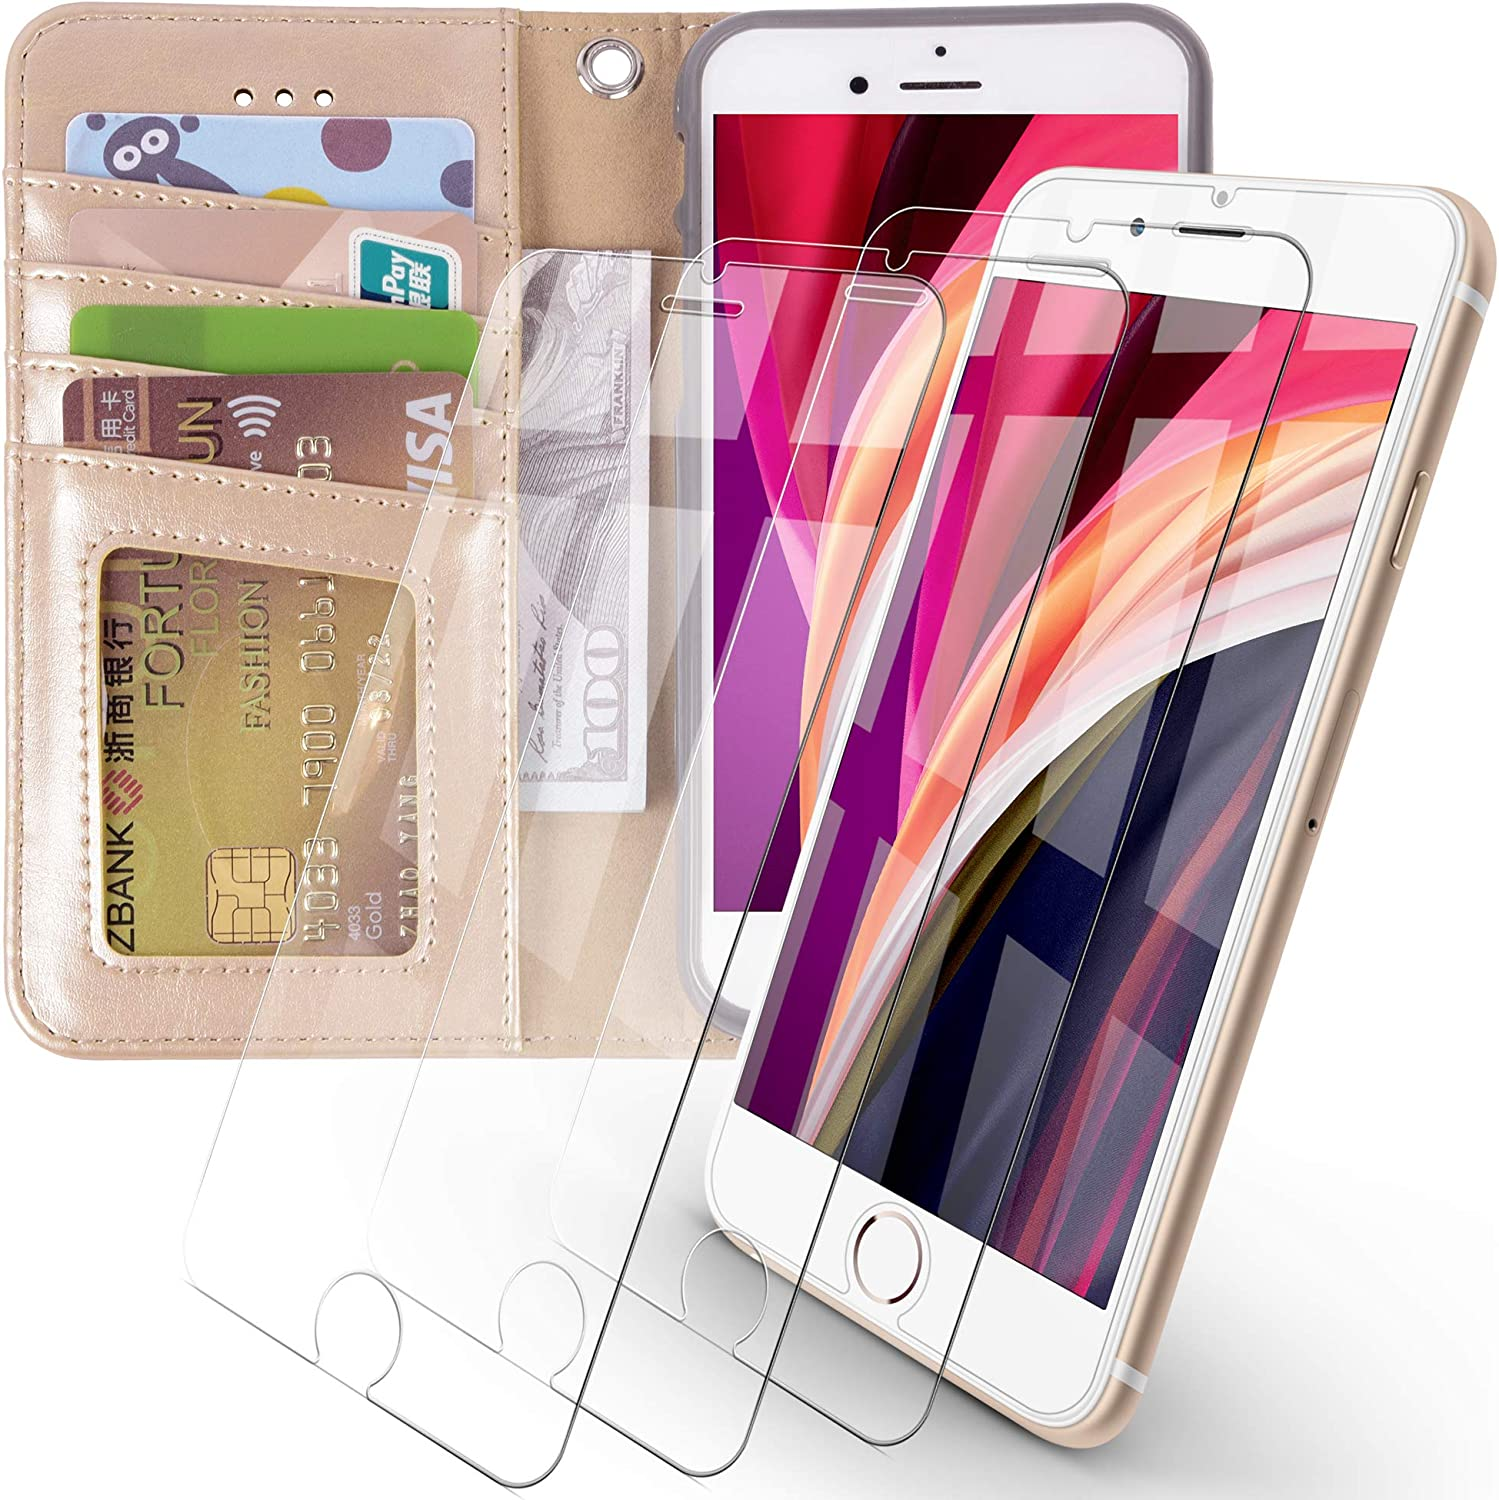 Arae iPhone 7 / iPhone 8 / iPhone SE 2020 Premium PU Leather Flip Cover Wallet Case (Champagne Gold) with 3 Pack Ultra-Thin HD Tempered Glass Screen Protectors, 4.7 inch